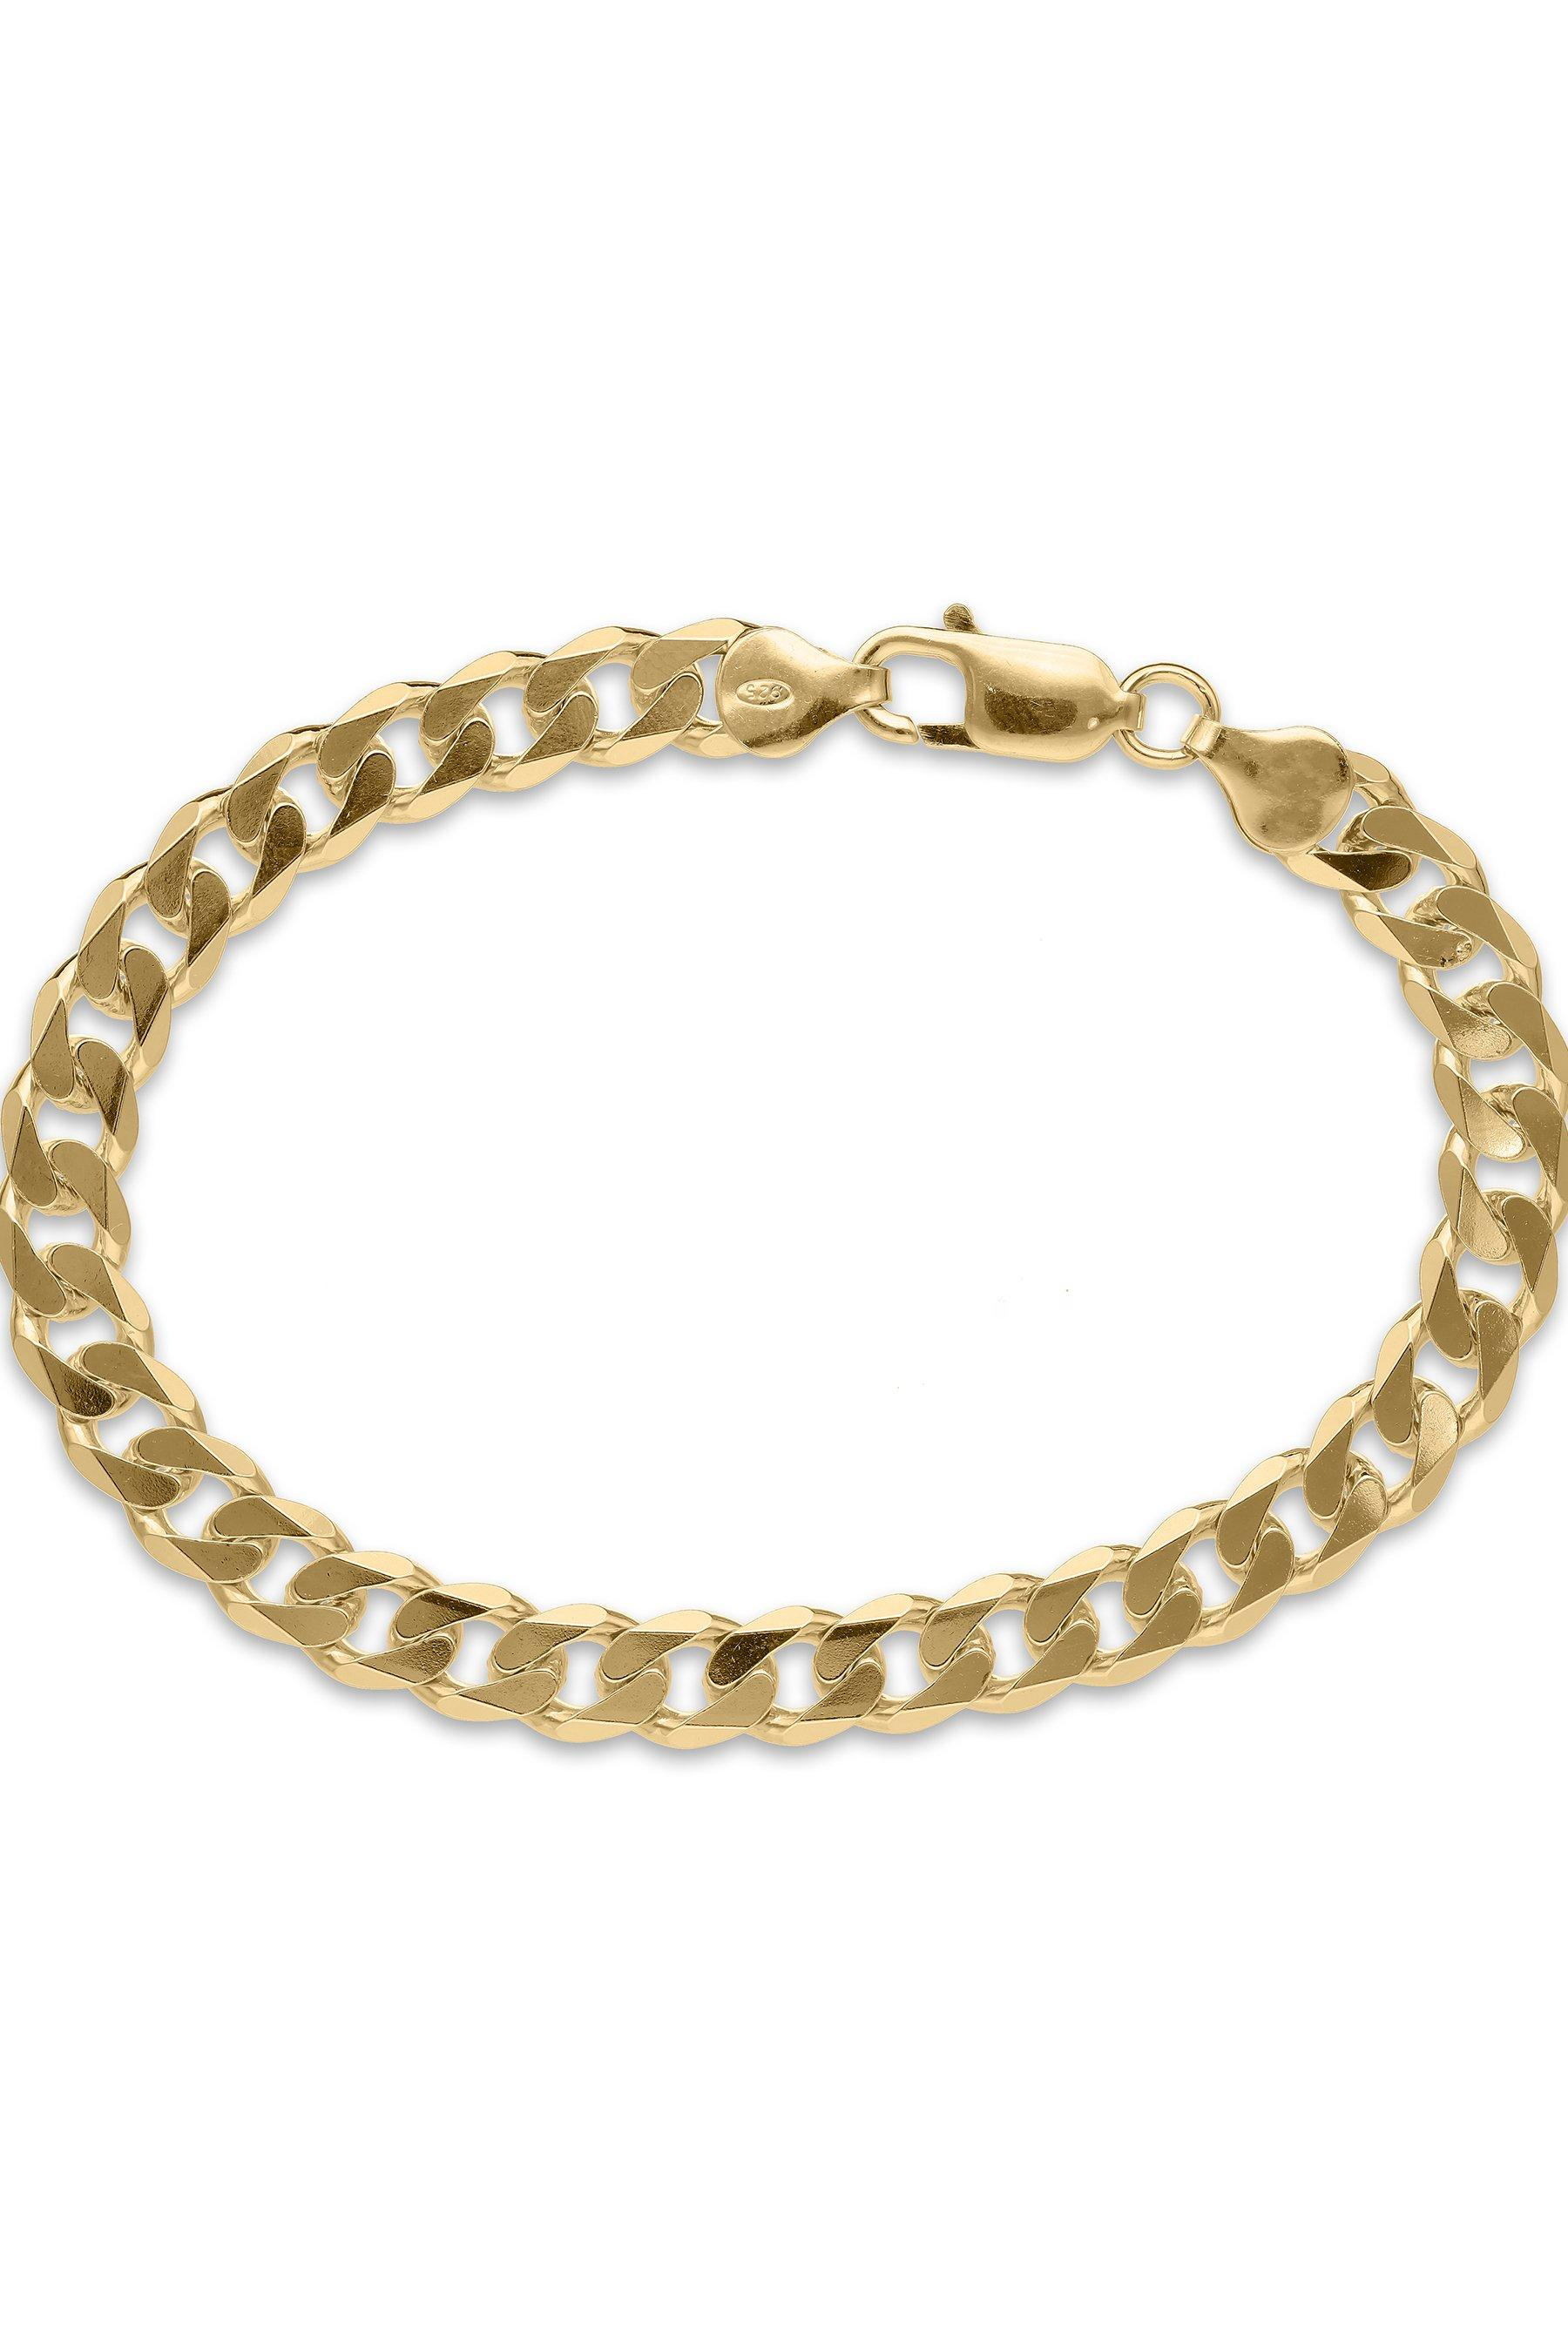 8 inch gold plated silver solid curb chain bracelet